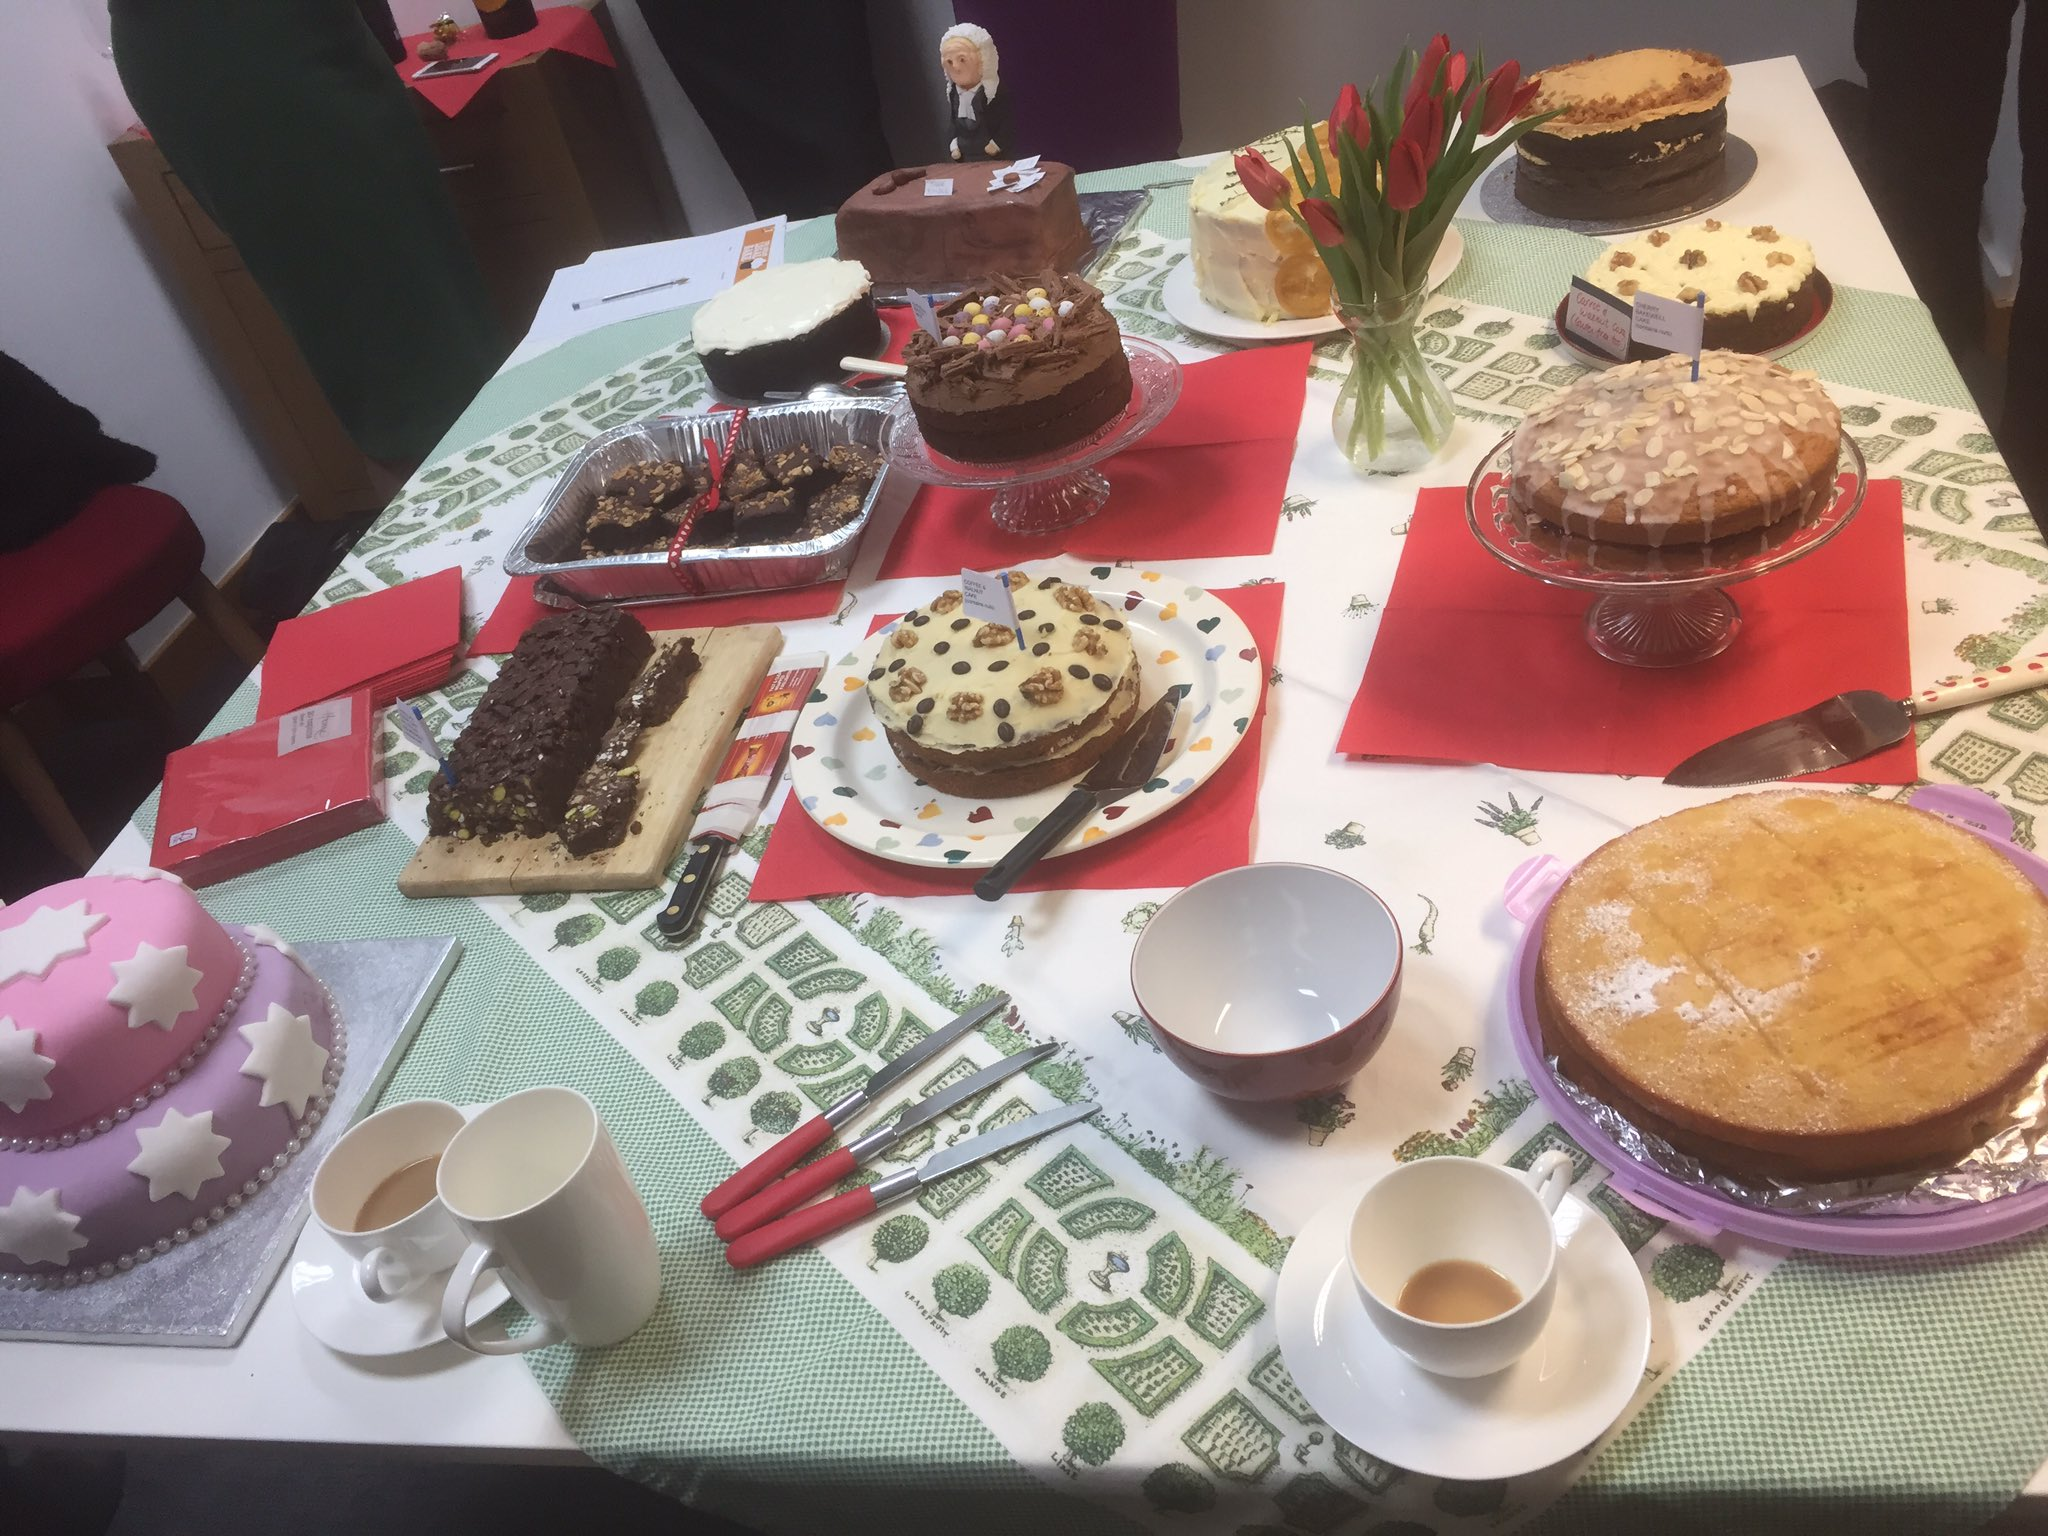 Wow - what an amazing display! @kbowers_legal @greatlegalbake. Thank you @RaydensLaw https://t.co/tGE8dJ9EX8